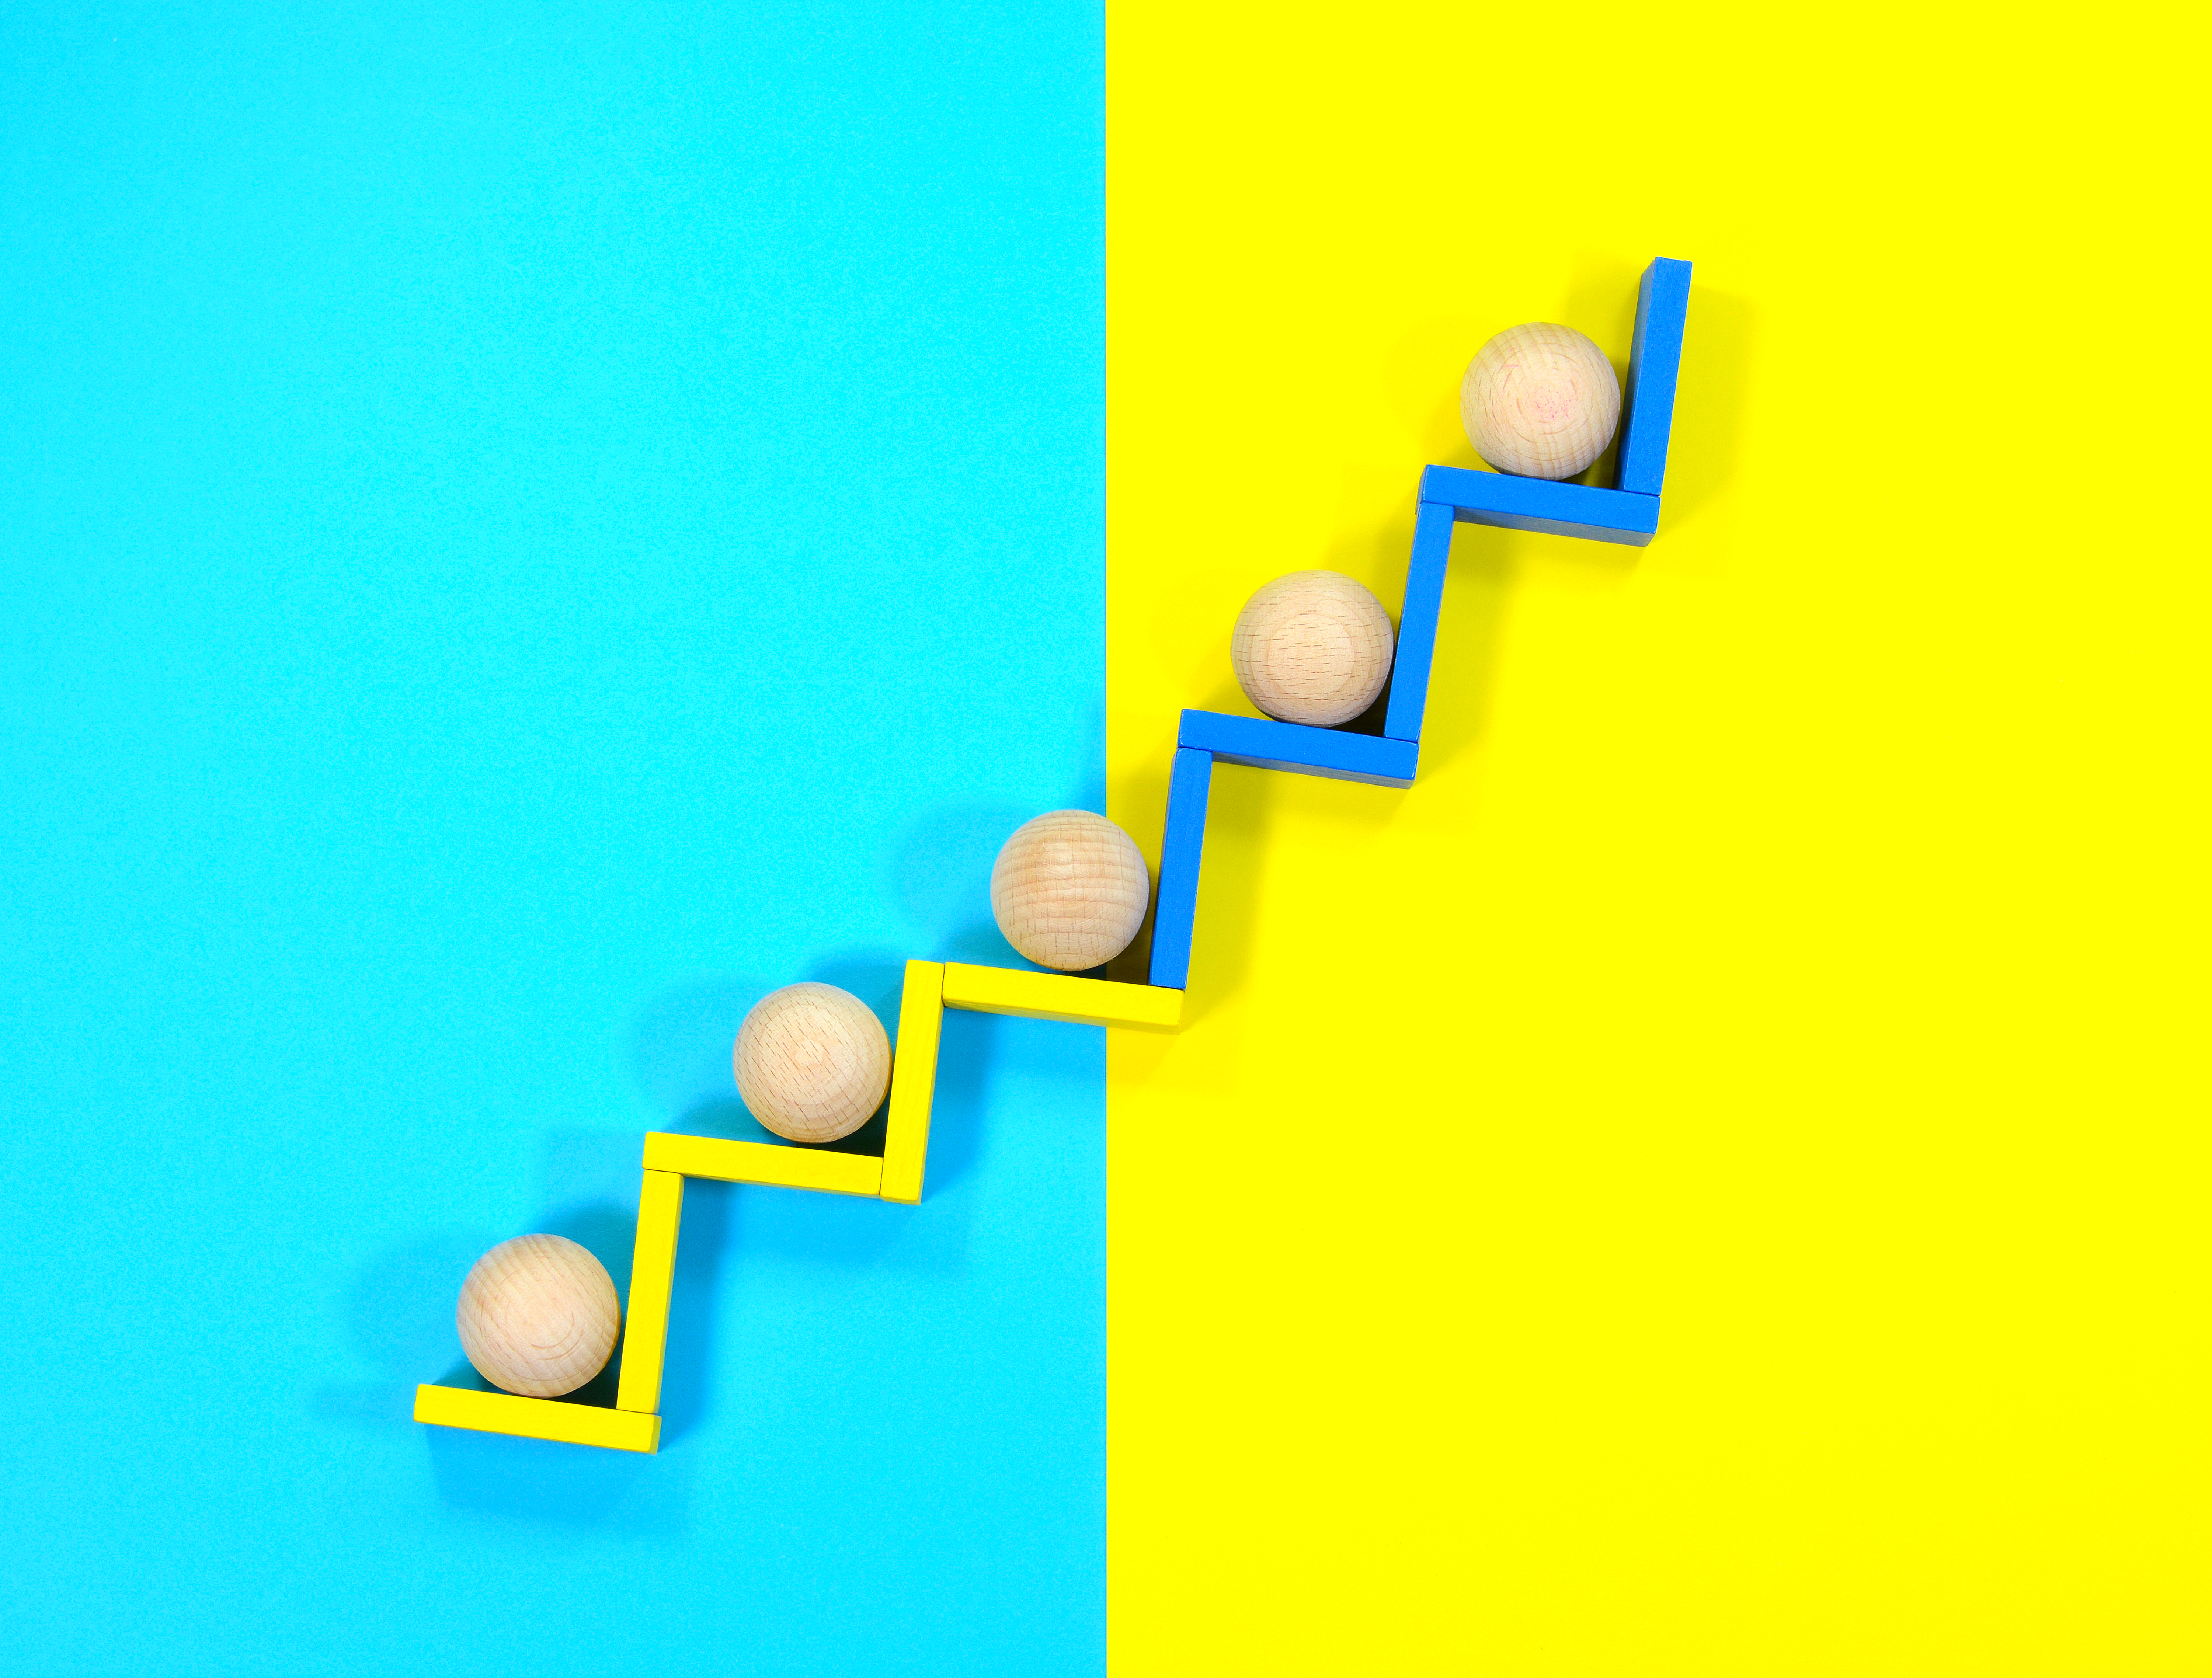 Image of five round wooden balls moving up steps to represent growth.